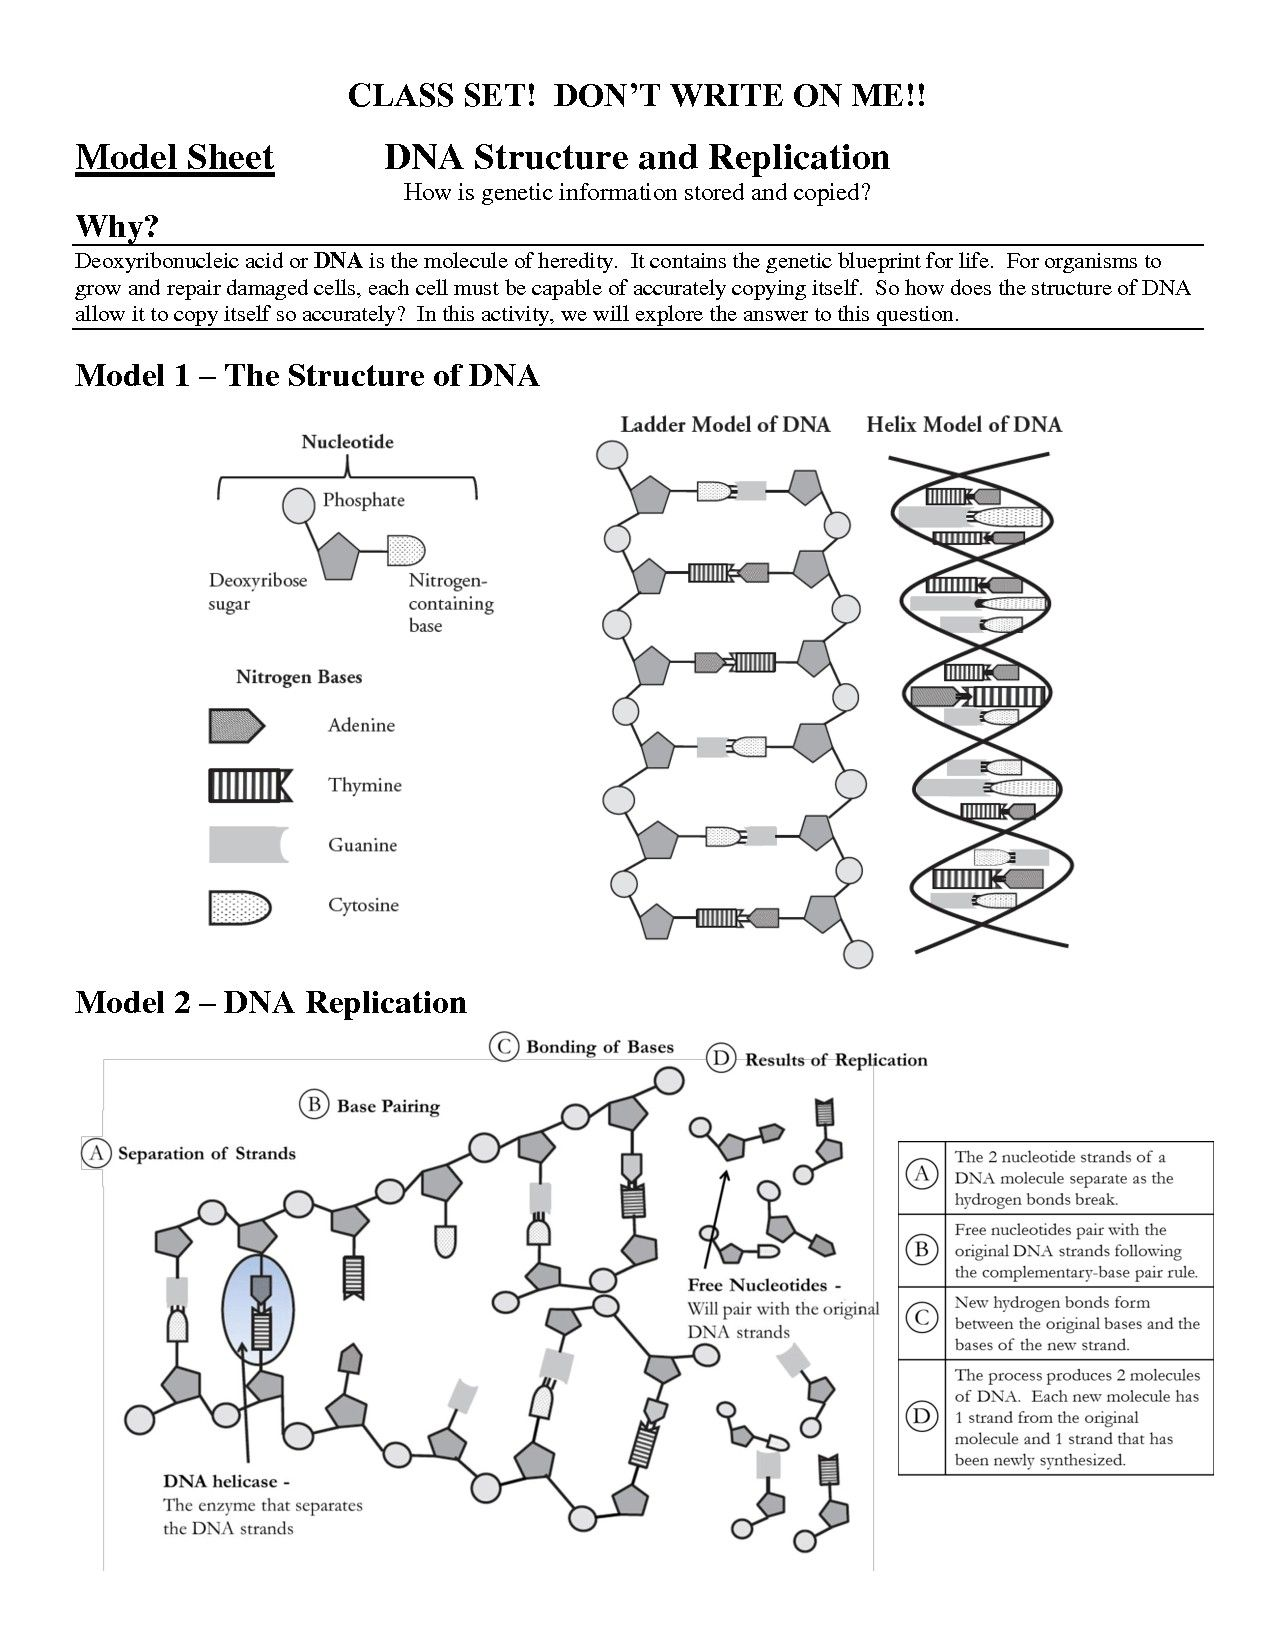 Dna Structure Worksheet Answers Dna Structure And Replication Worksheet Answer Key In 2020 Worksheet Template Dna Replication Worksheets